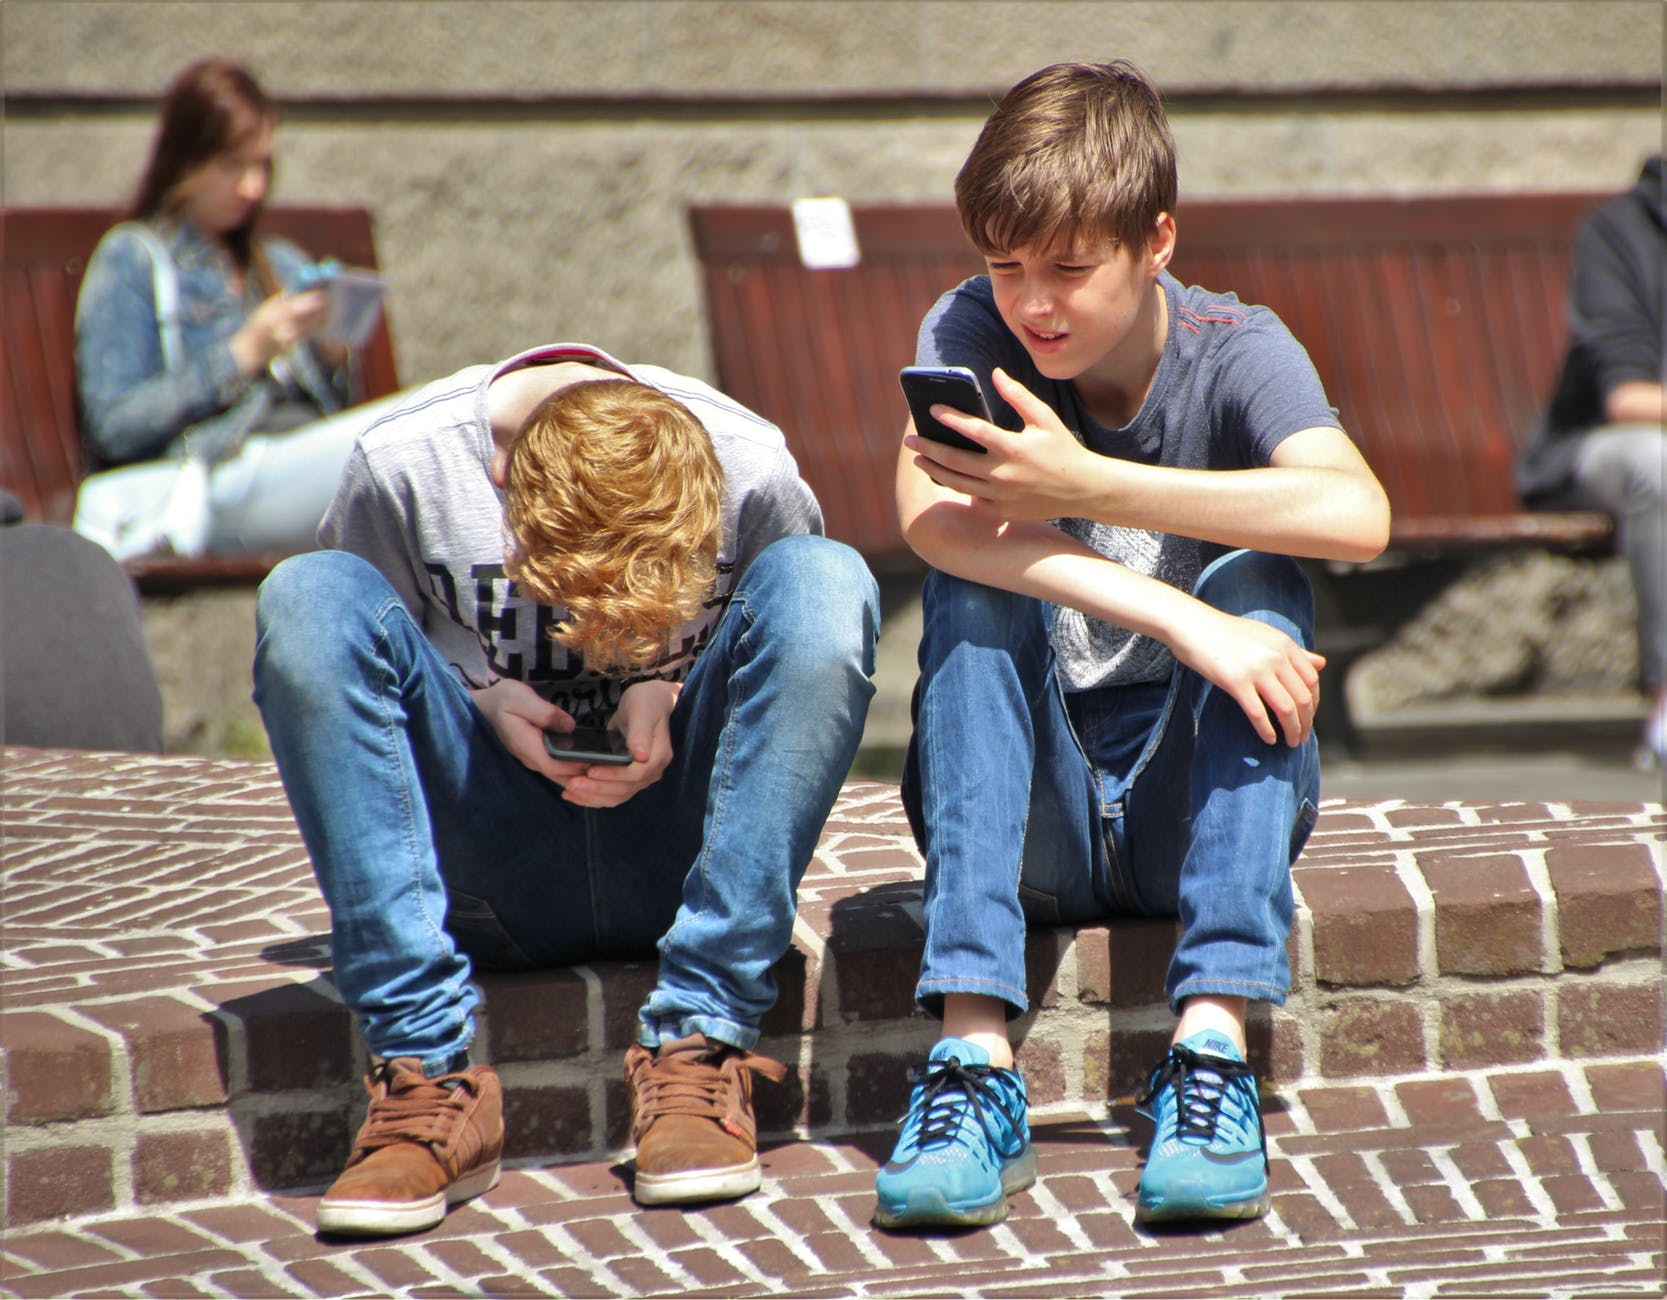 How to keep Children safe online with Parental Control?